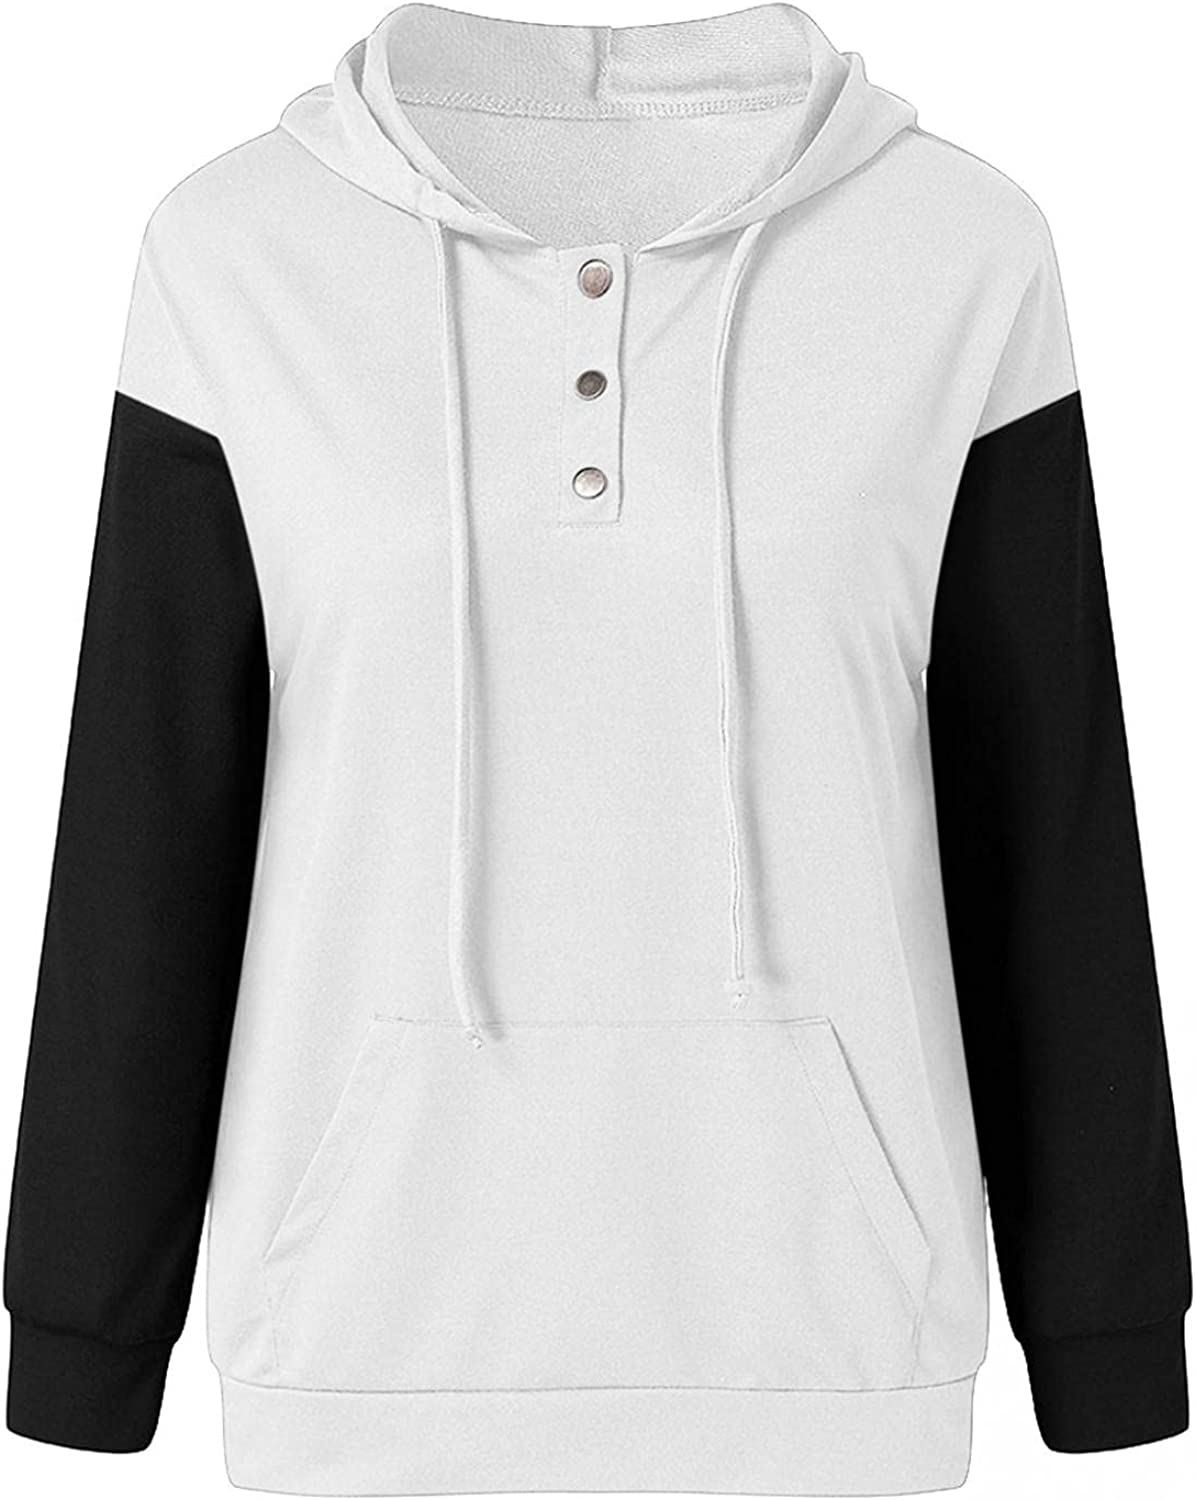 felwors Hoodies for Women, Womens Pullover Hoodies Loose Button Down Color Block Long Sleeve Sweatshirts with Pockets